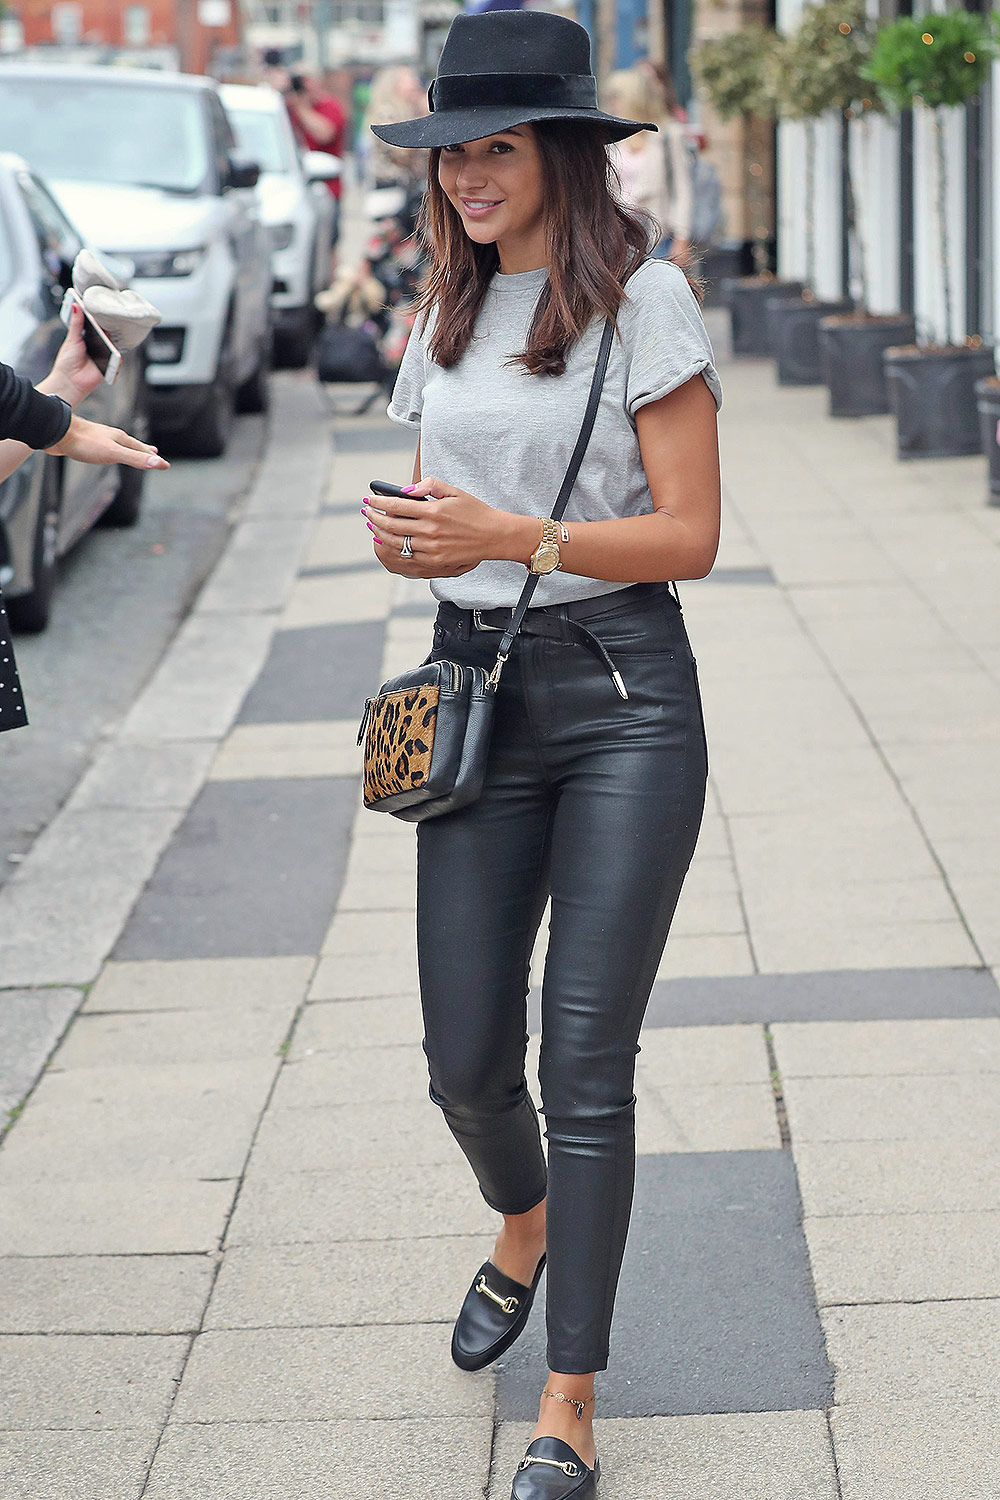 Michelle Keegan seen in Cheshire